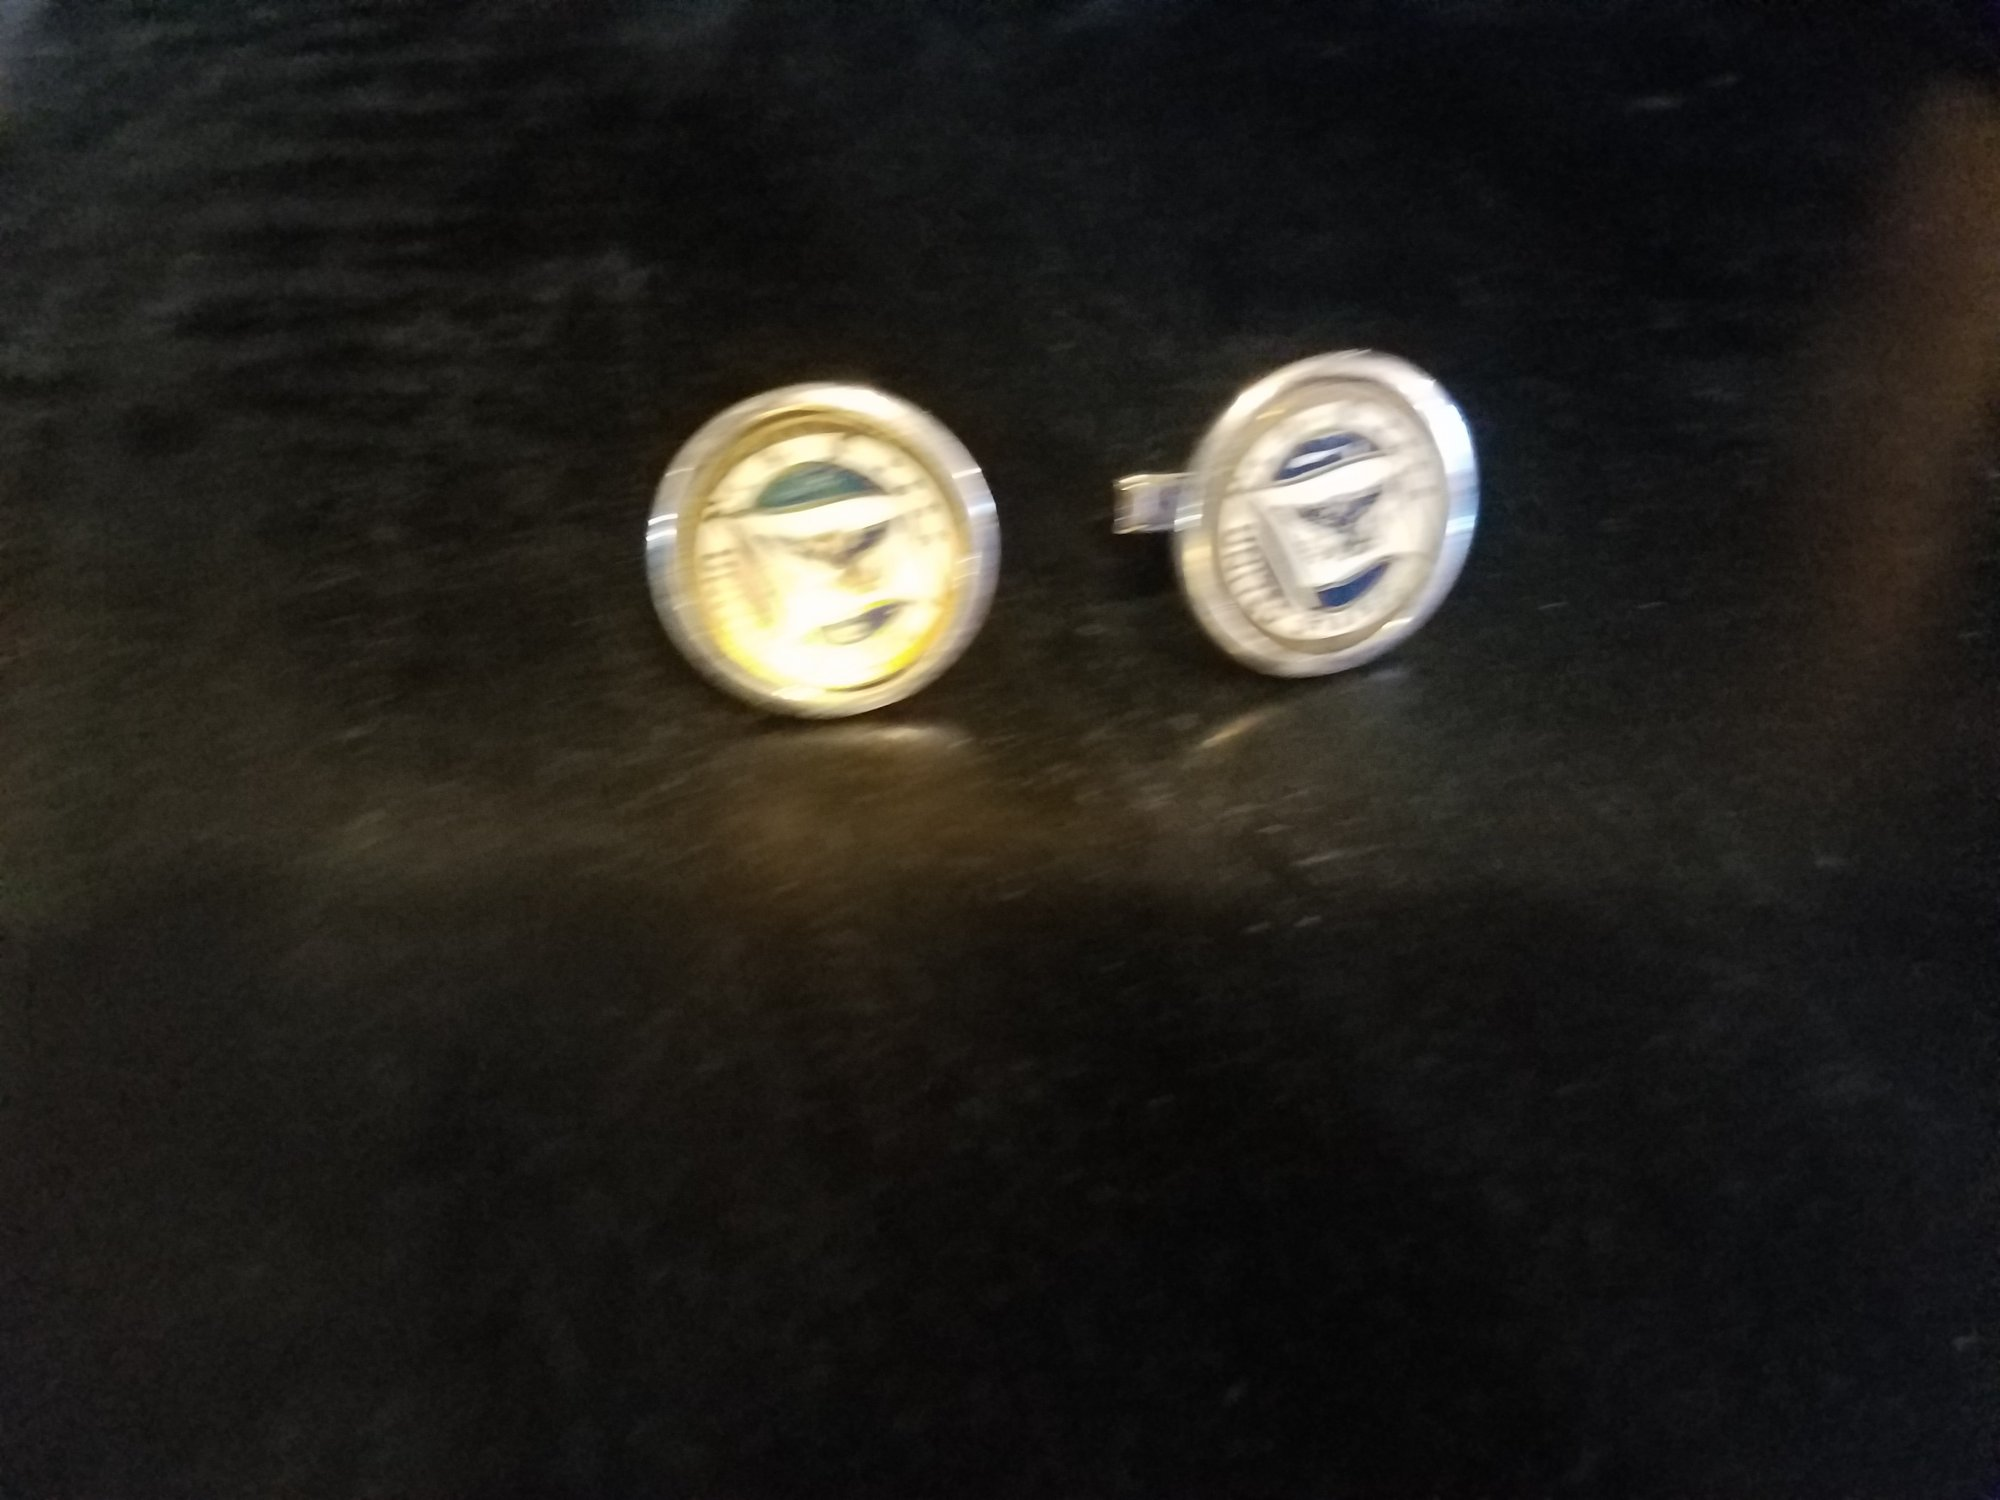 Pair of American cufflinks with flag